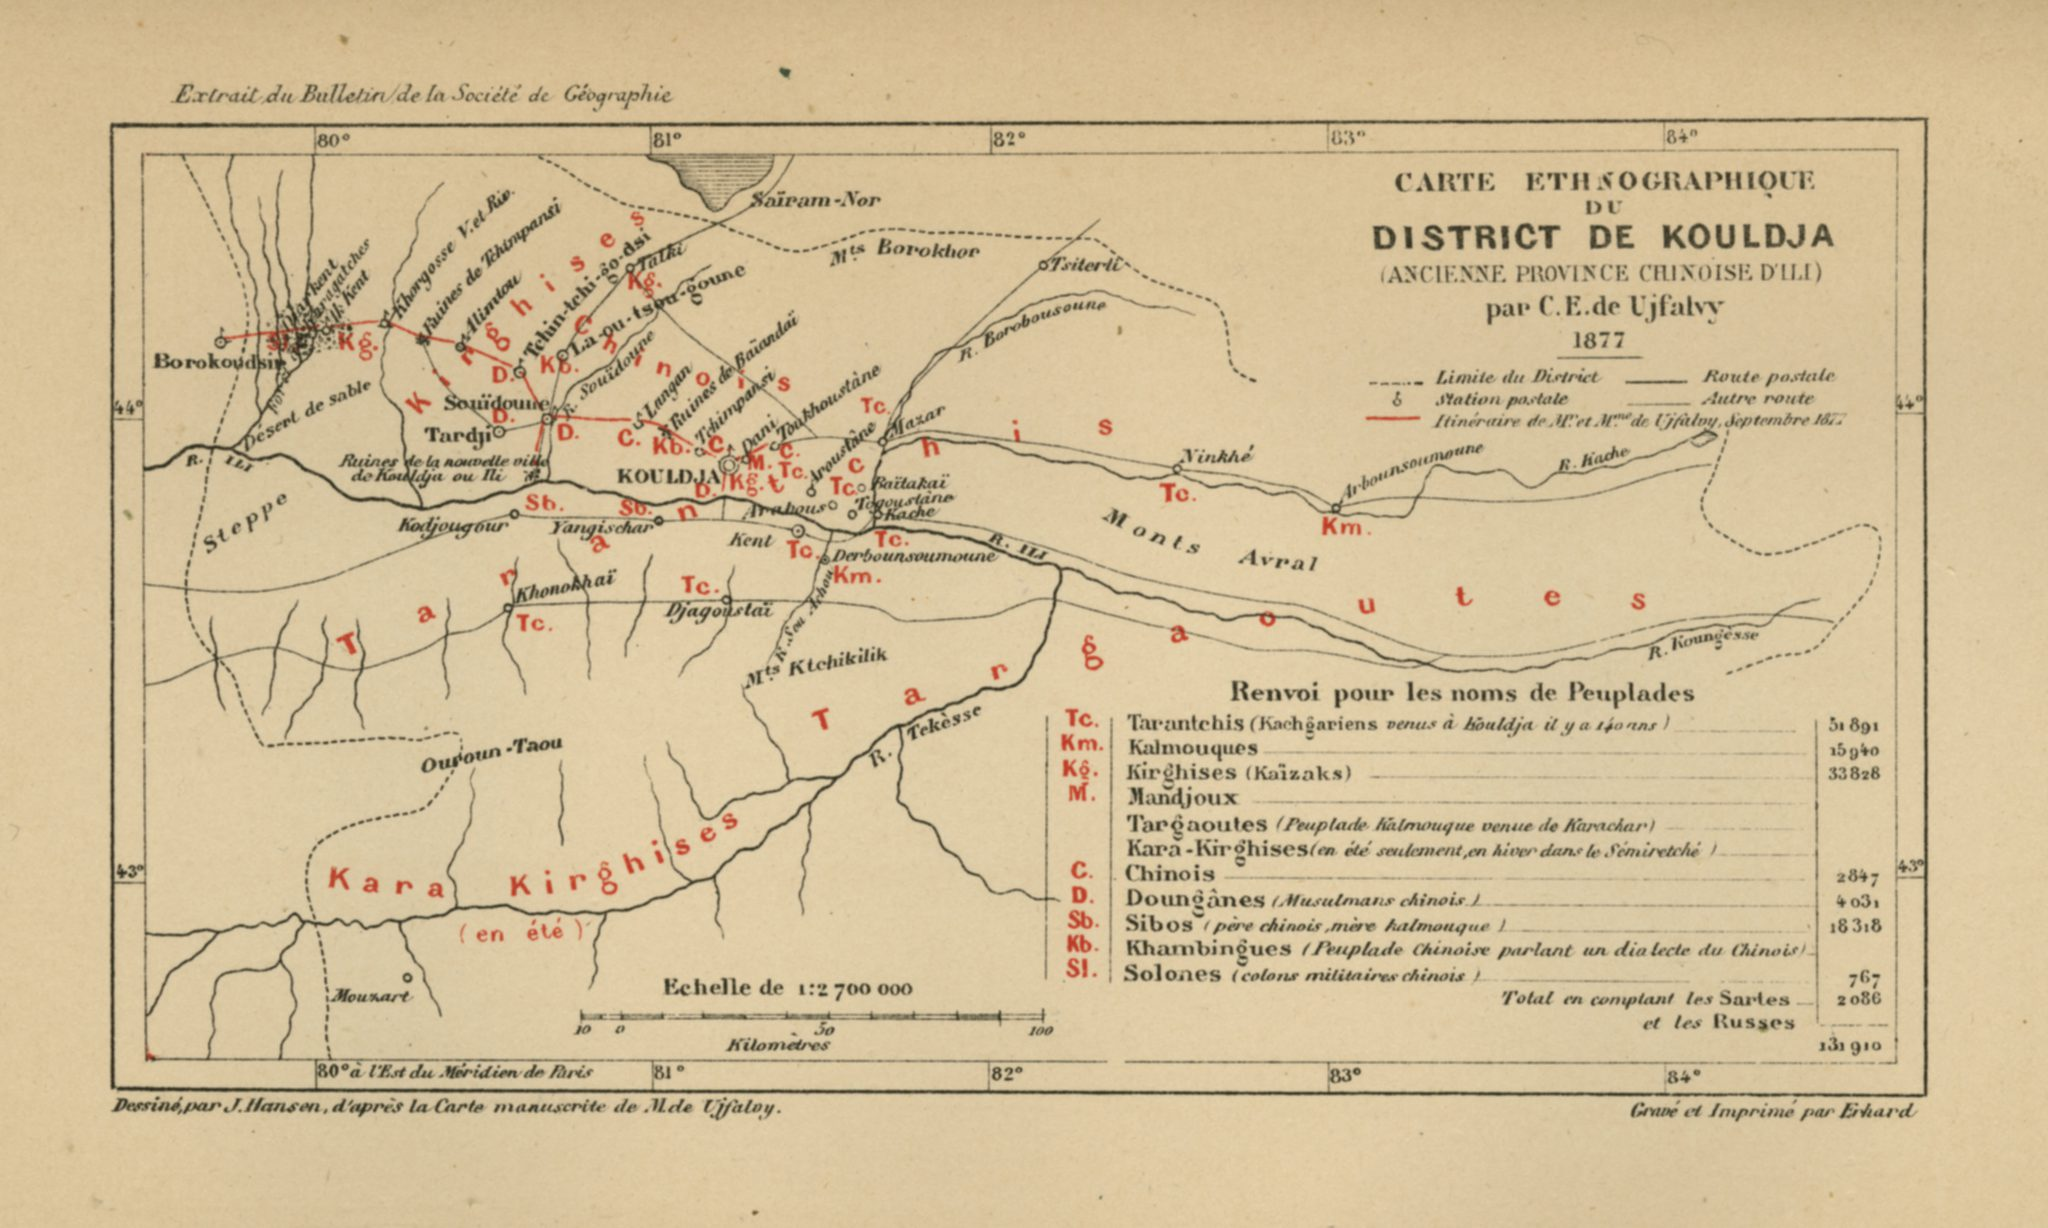 Carte ethnographique du district de Kouldja 1878